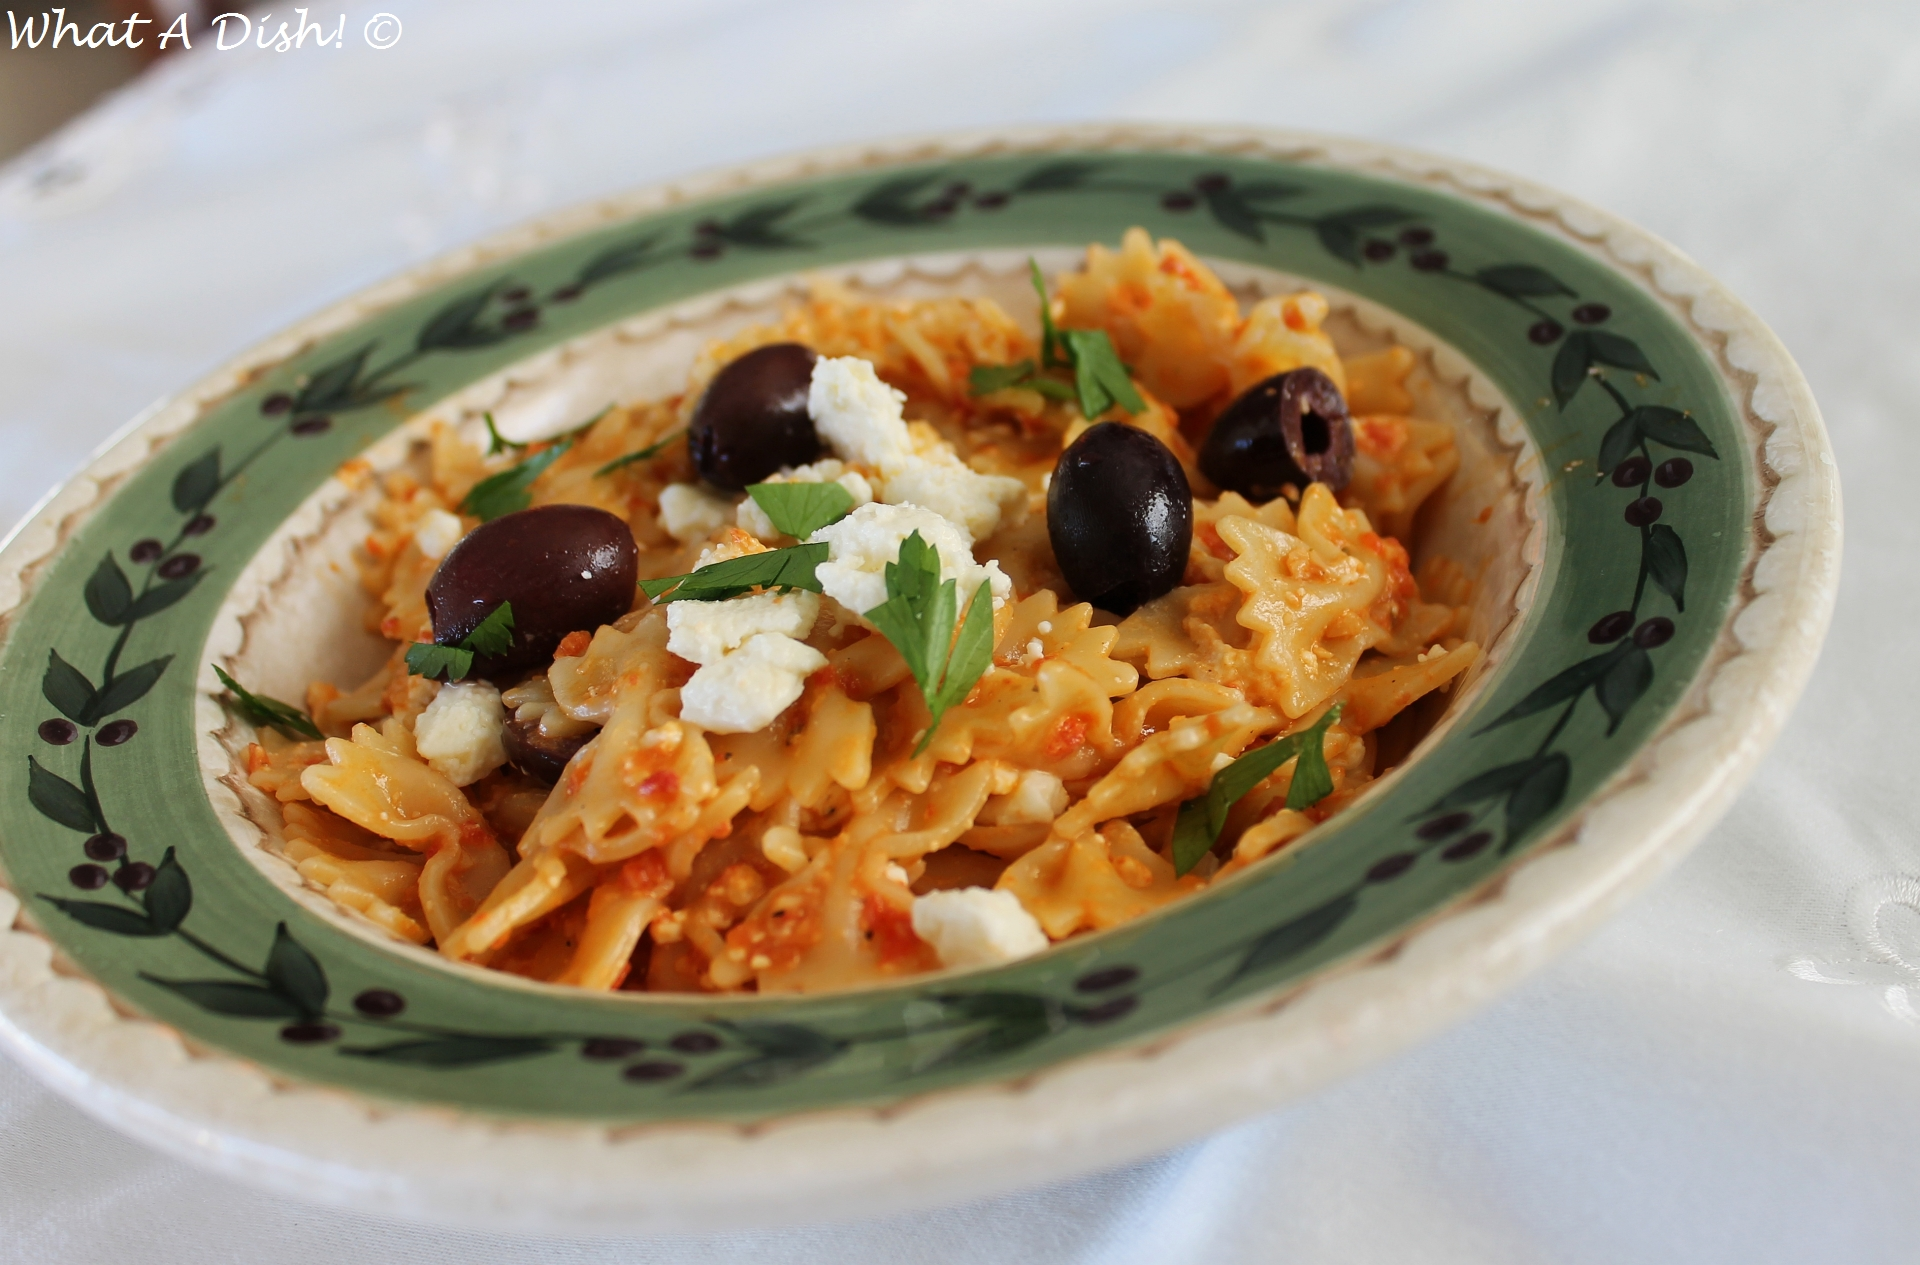 What A Dish!: Roasted Red Pepper Pesto Greek-Inspired Pasta